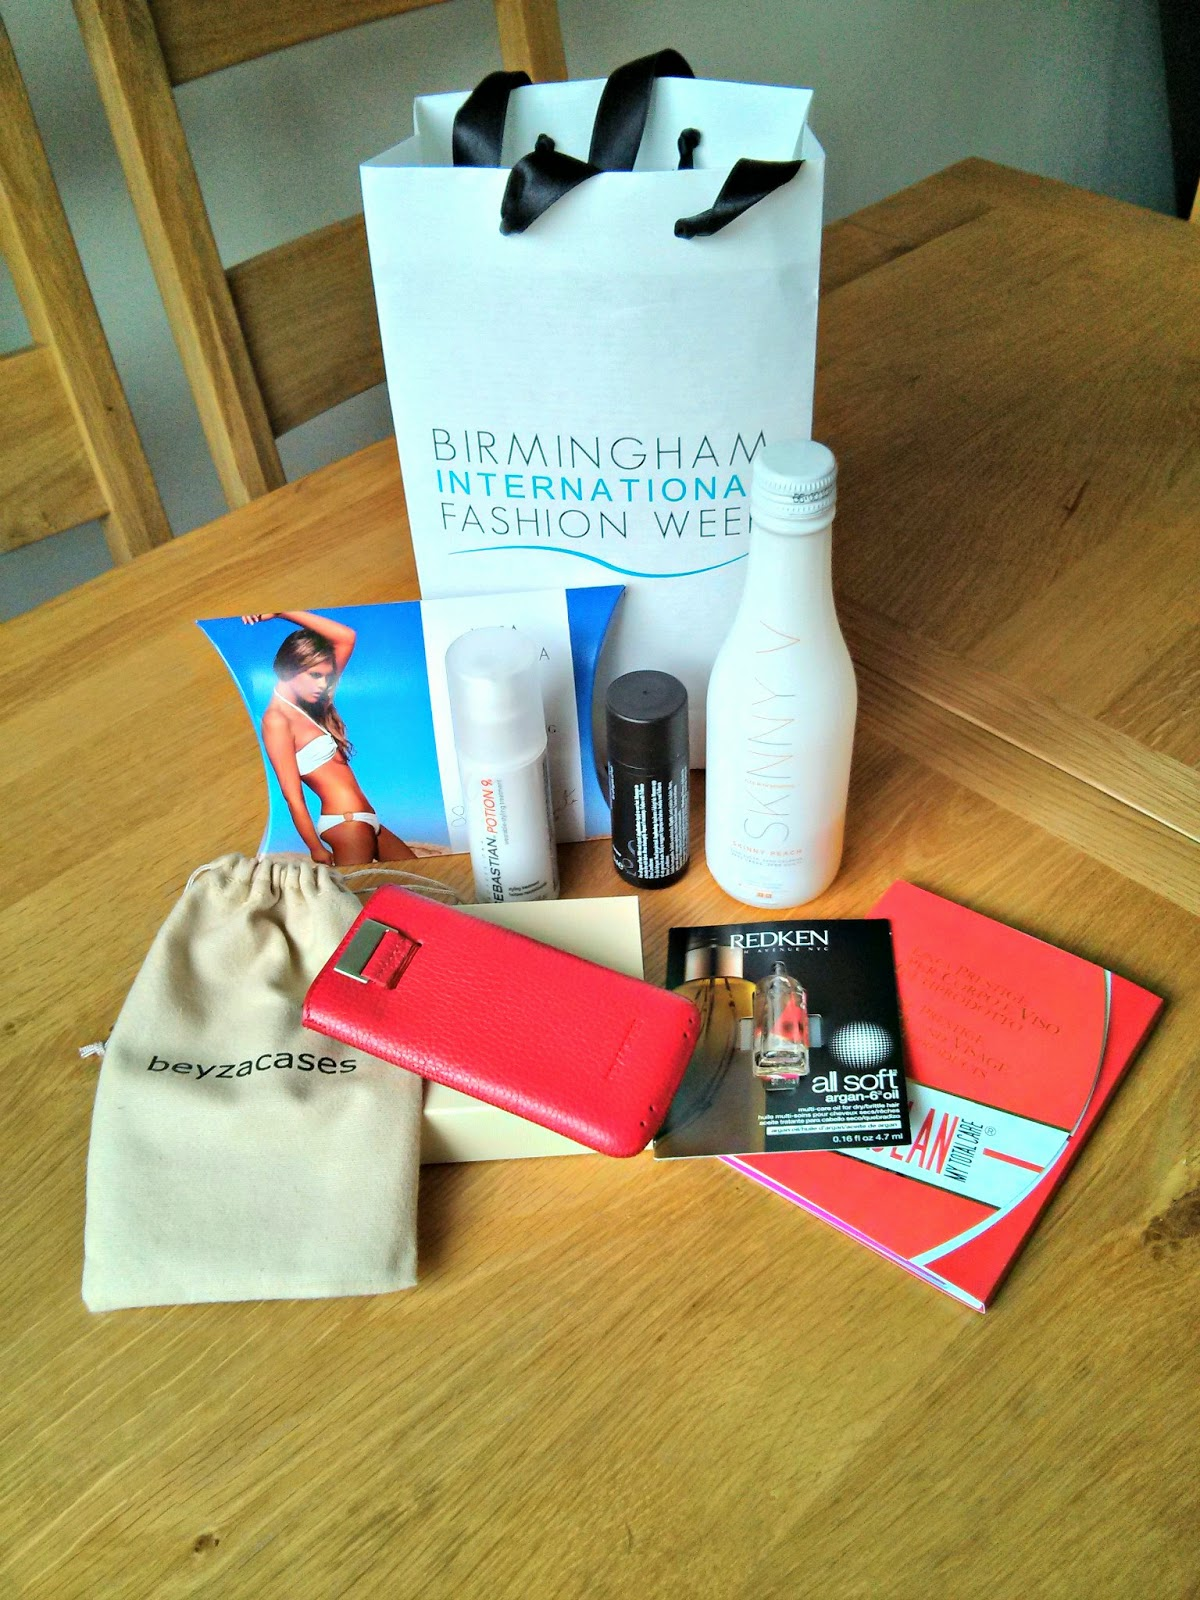 Birmingham Fashion Week Goody bag